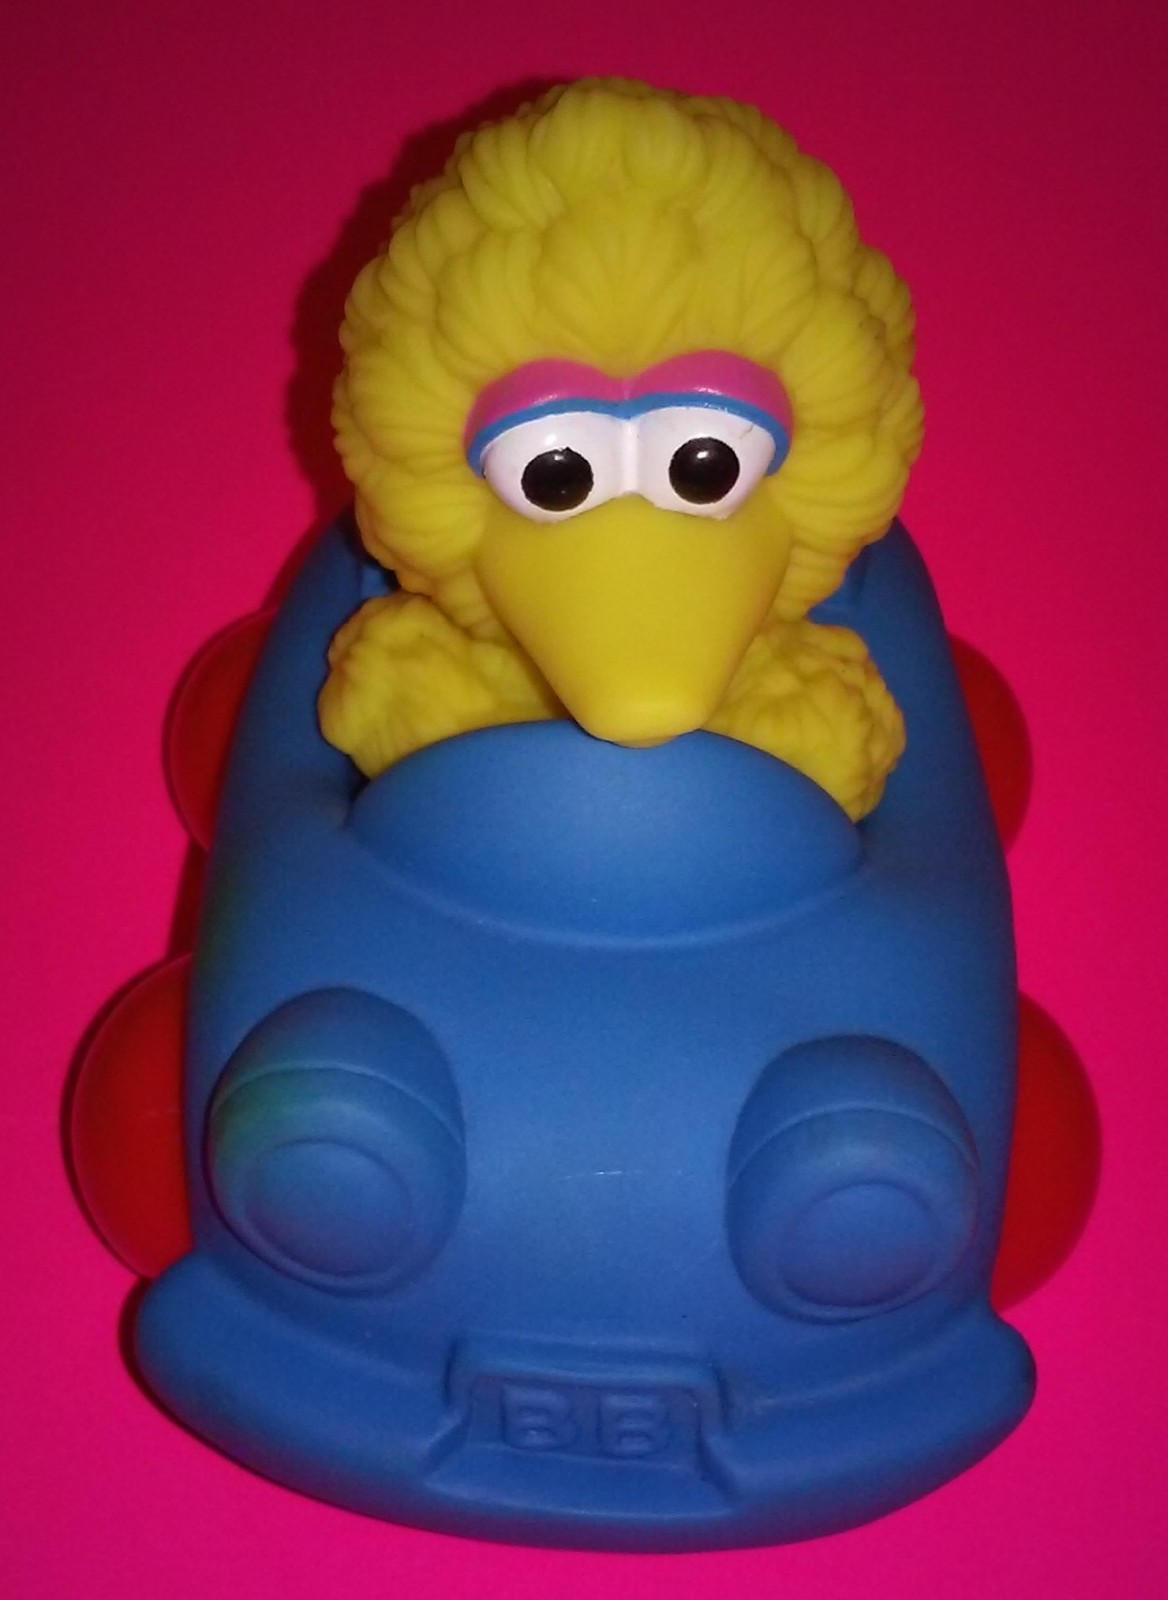 Sesame Street Big Bird in Blue Car by Tyco and 30 similar items